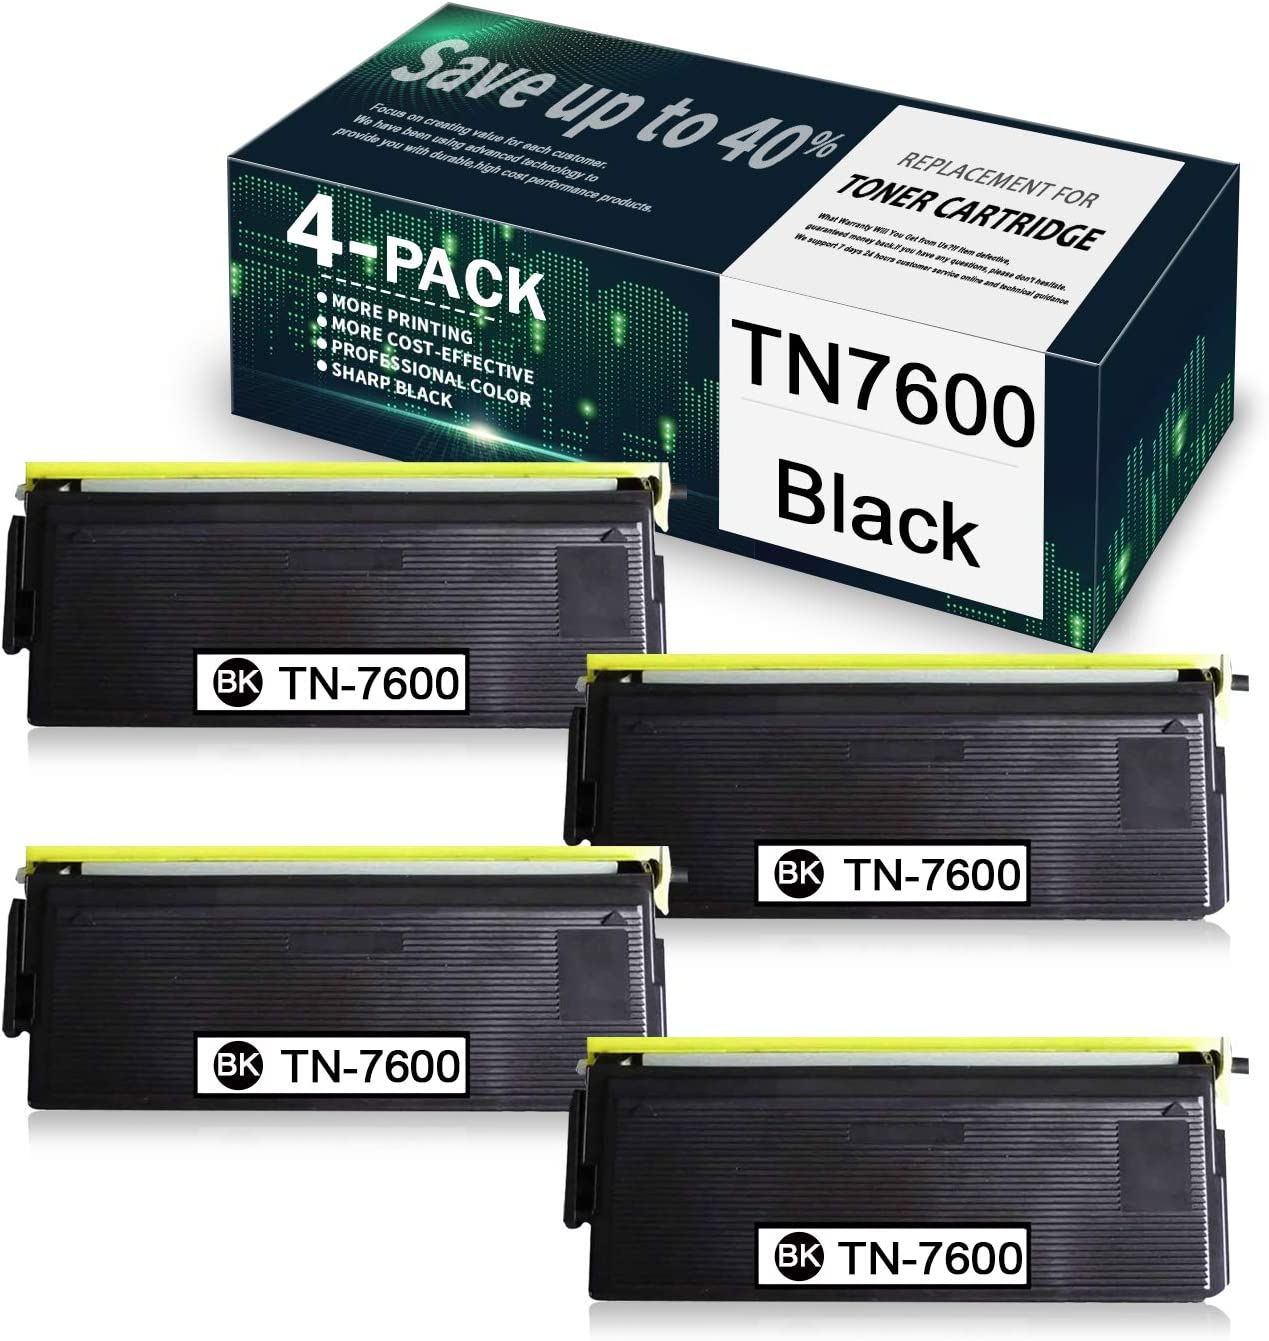 Black TN7600 (4 Pack) Compatible Toner Cartridge Replacement for Brother HL-1030 1200 1430 9750 1440 1240 1250 9650 1250 1650 1870N DCP 1400 MFC 2500 8600 8300J 8700 8500 Printer, Toner Cartridge.